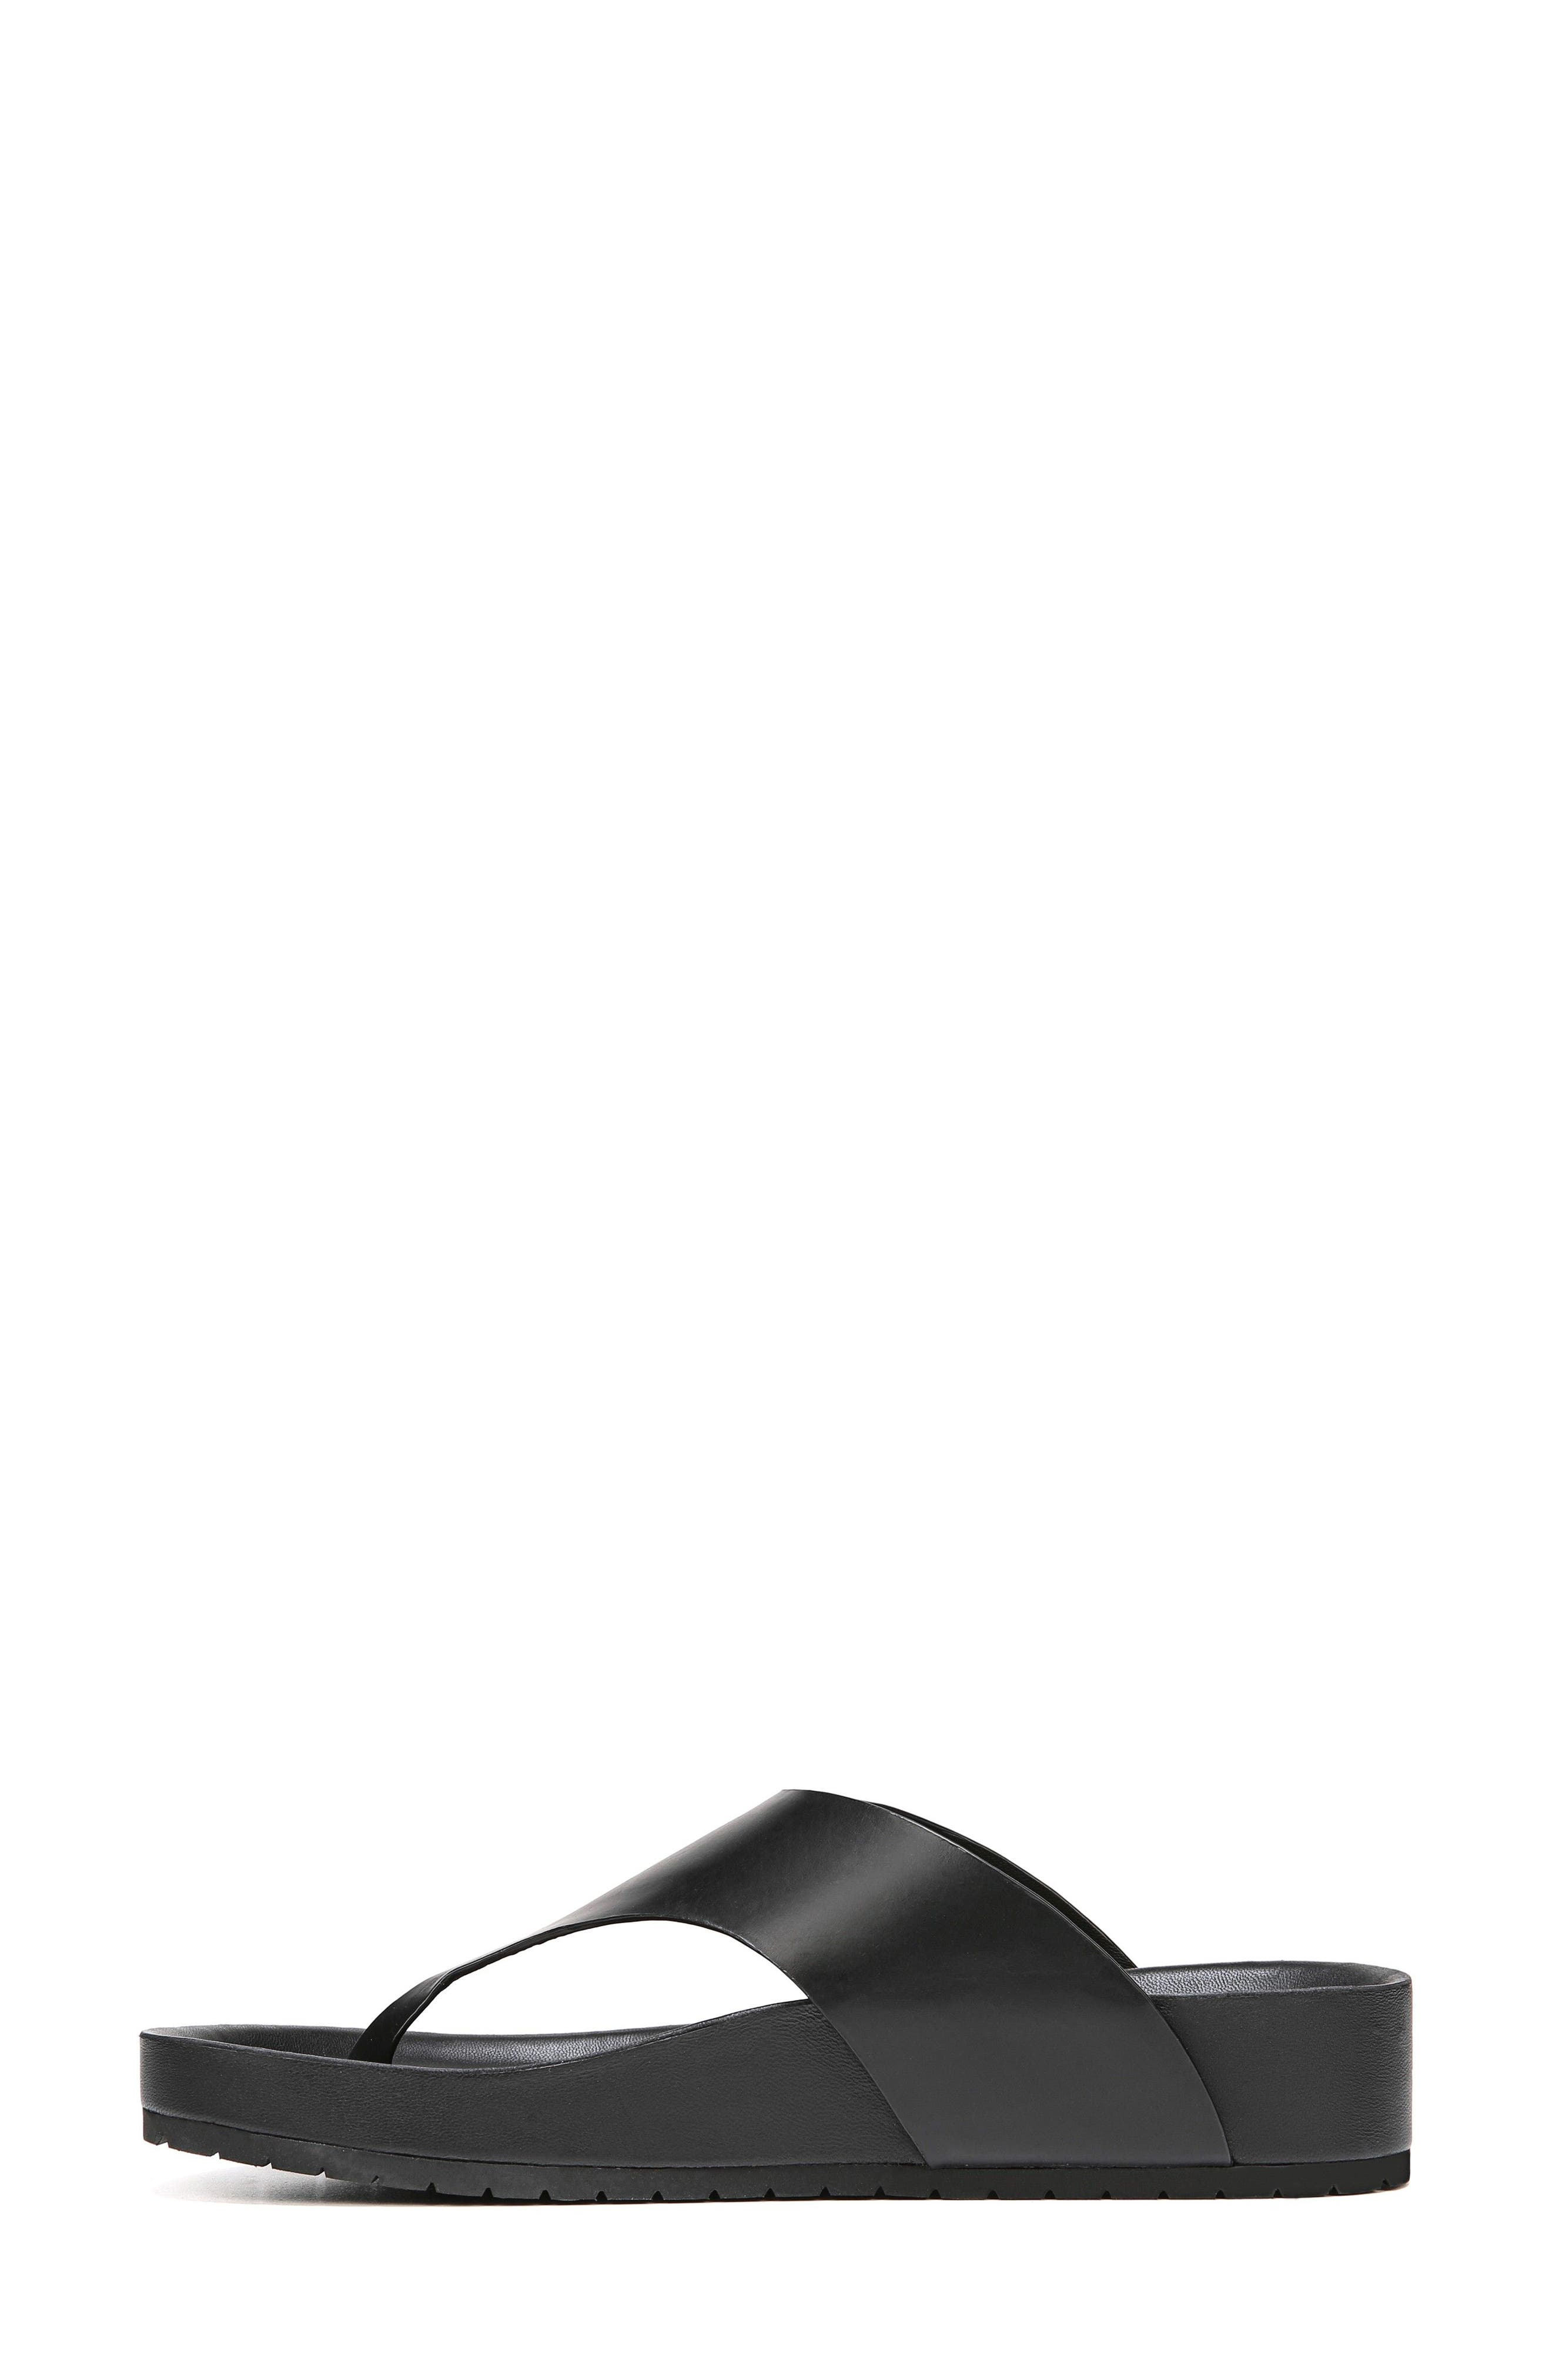 Padma Platform Sandal,                             Alternate thumbnail 7, color,                             BLACK